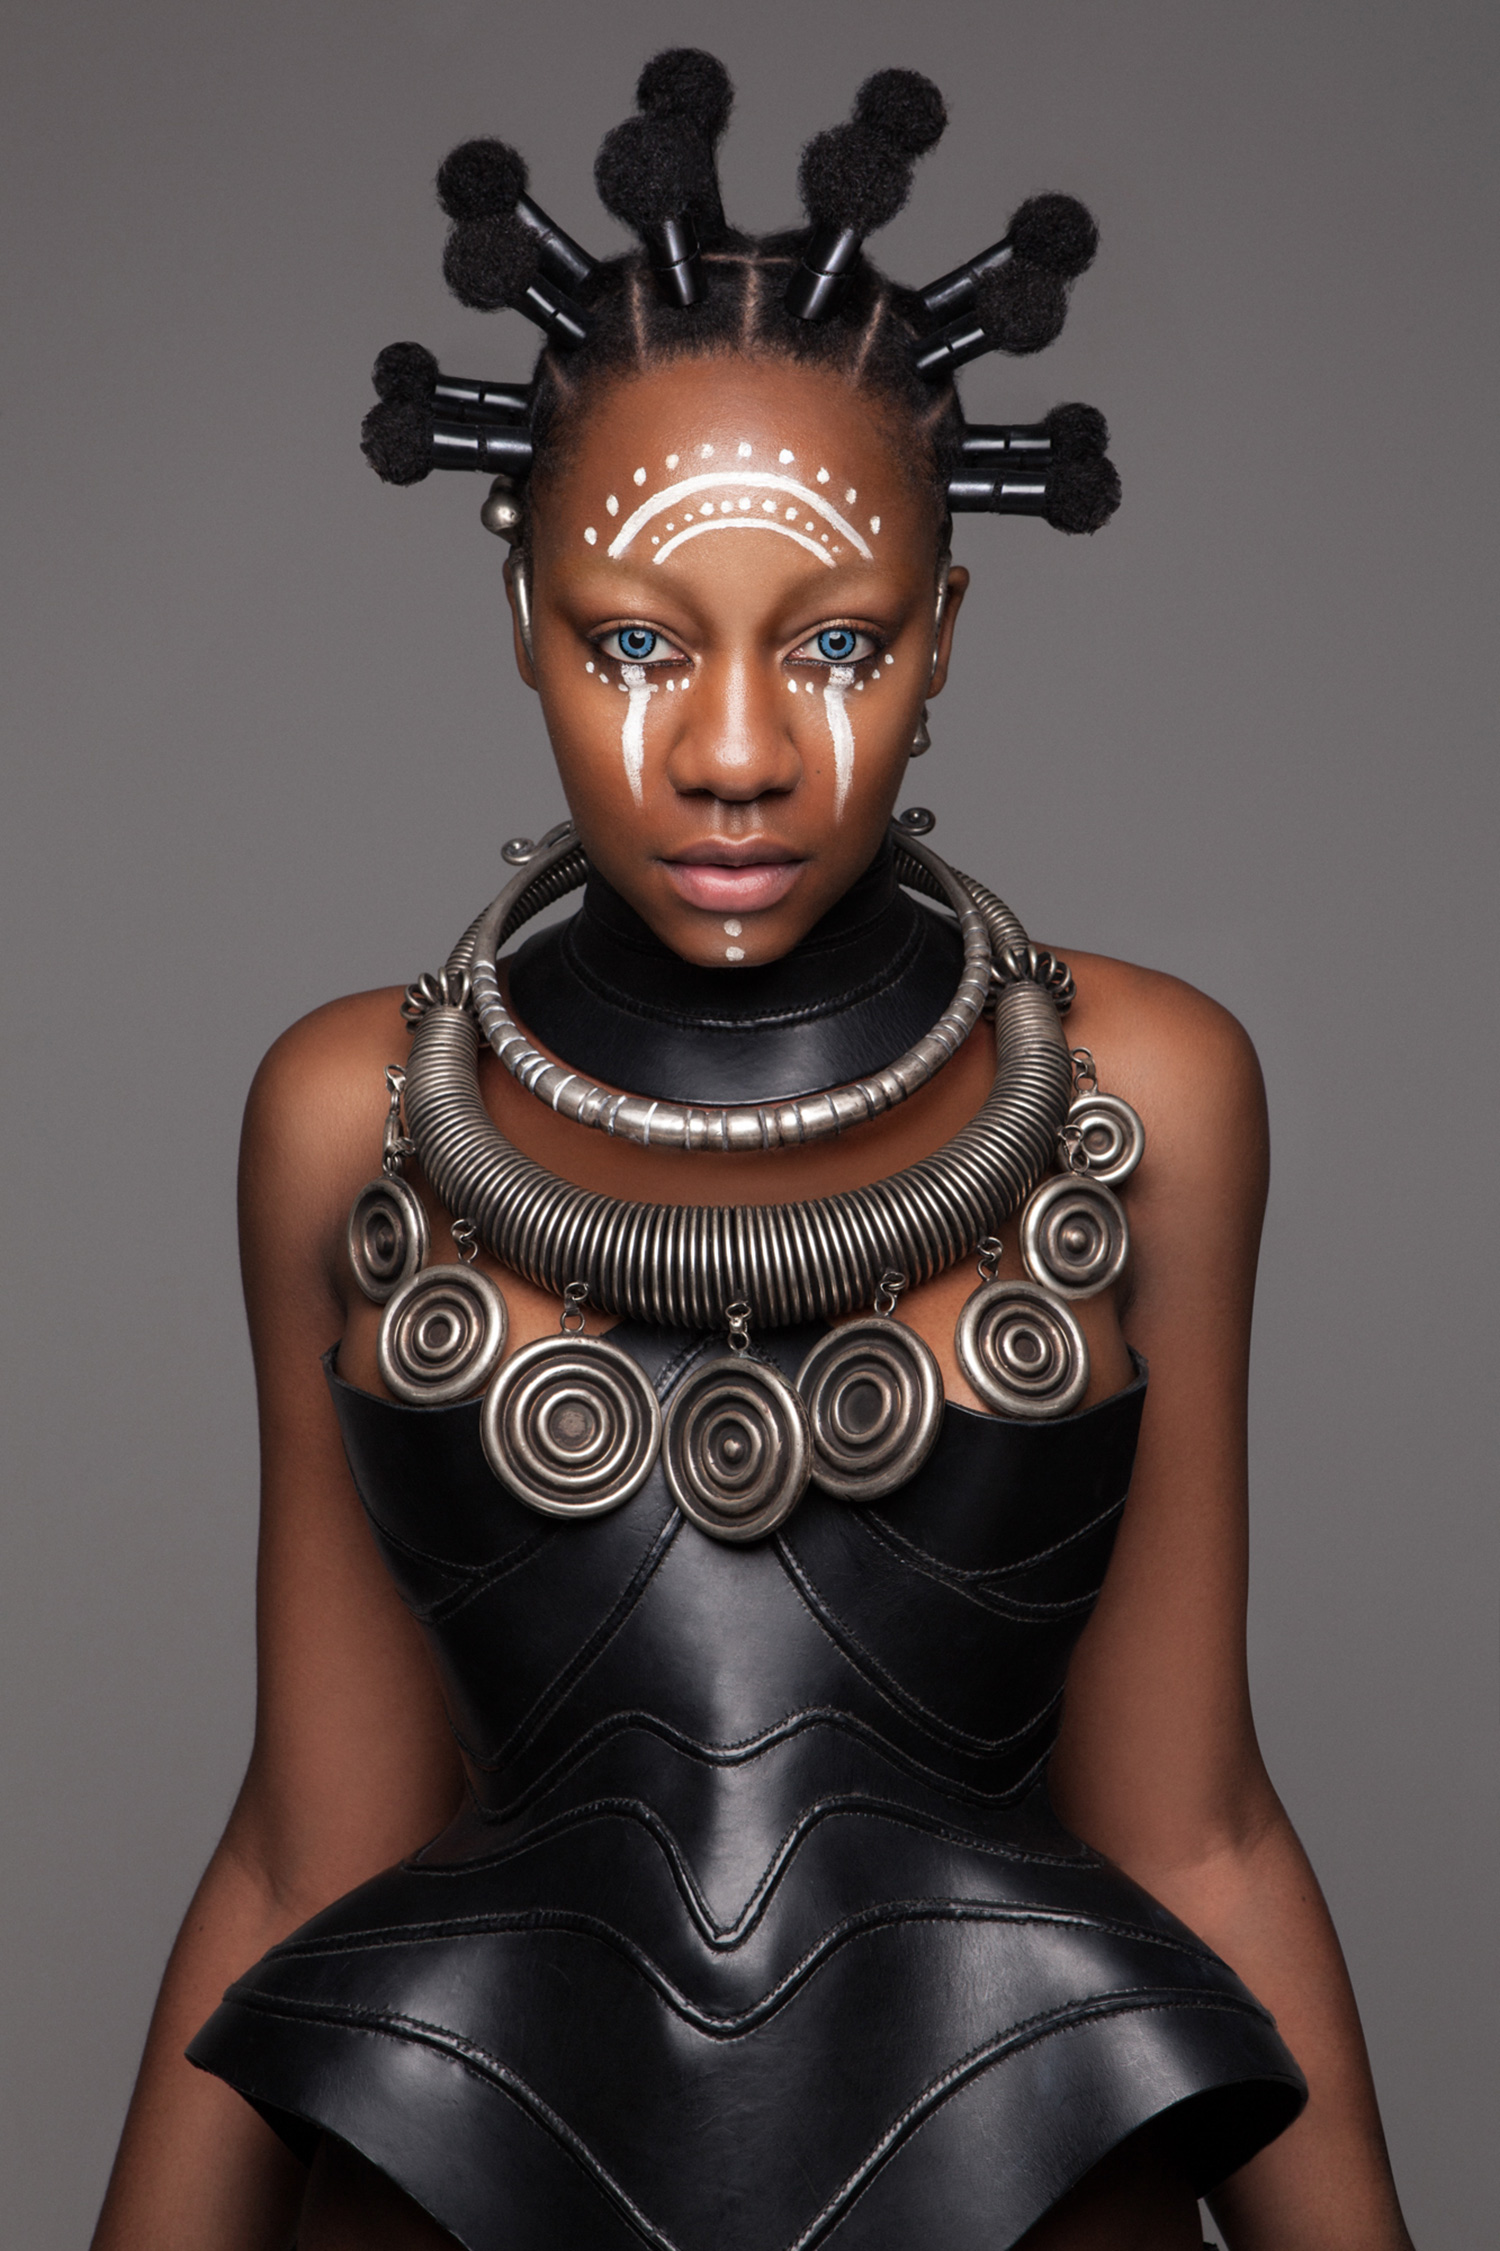 Luke Nugent - British Hair Awards 2016 - Afro Finalist Collection - face paint and abstract hair